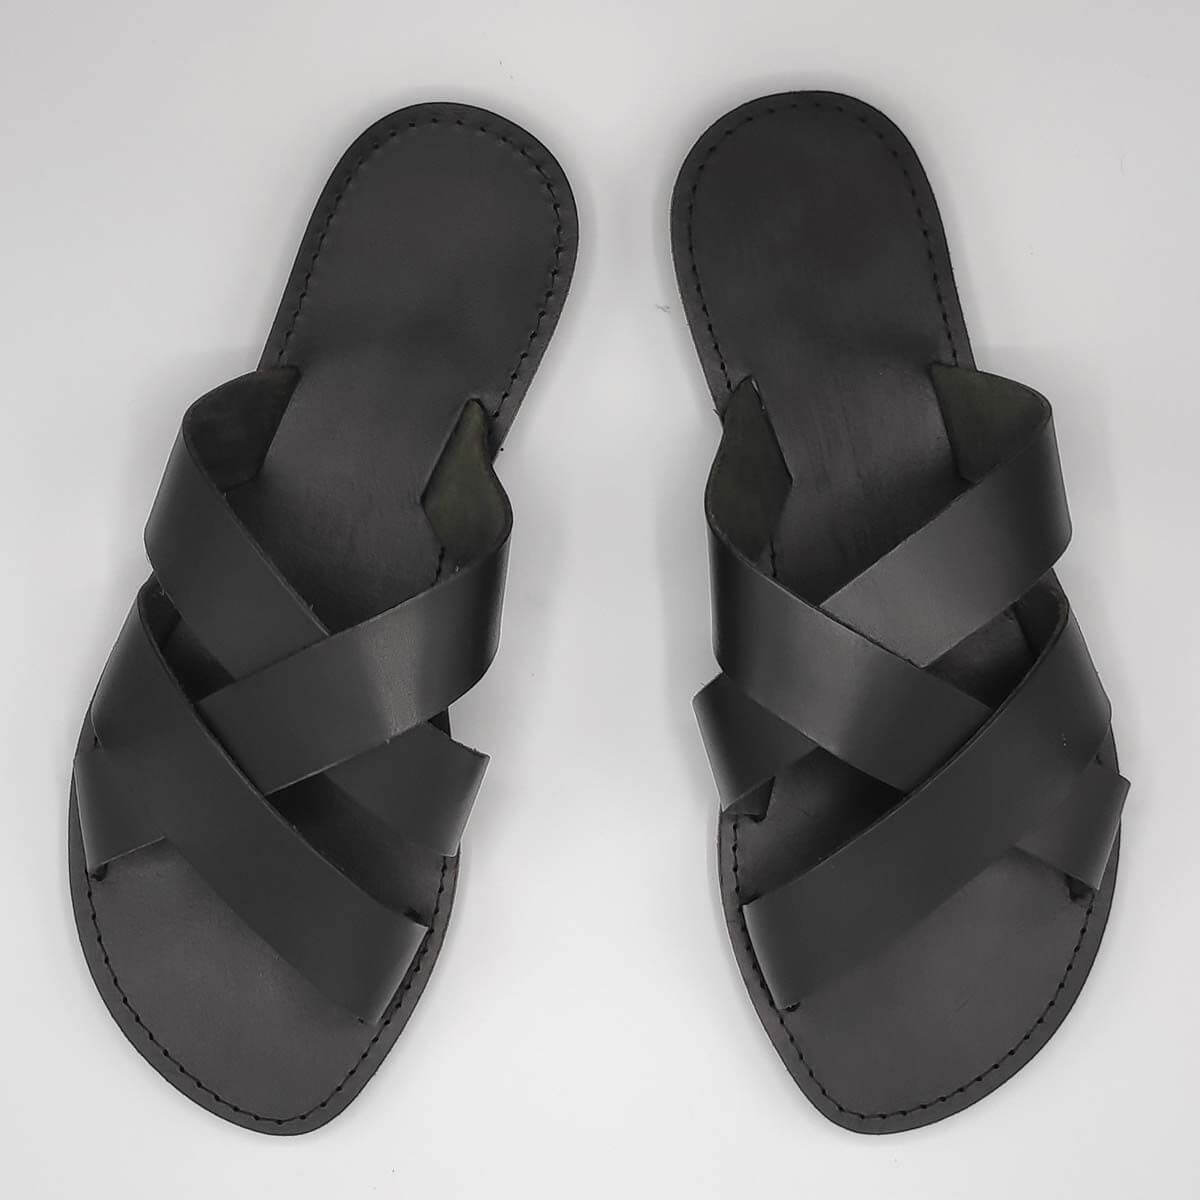 leather sandals for men black three straps criss cross top view - Avithos Men